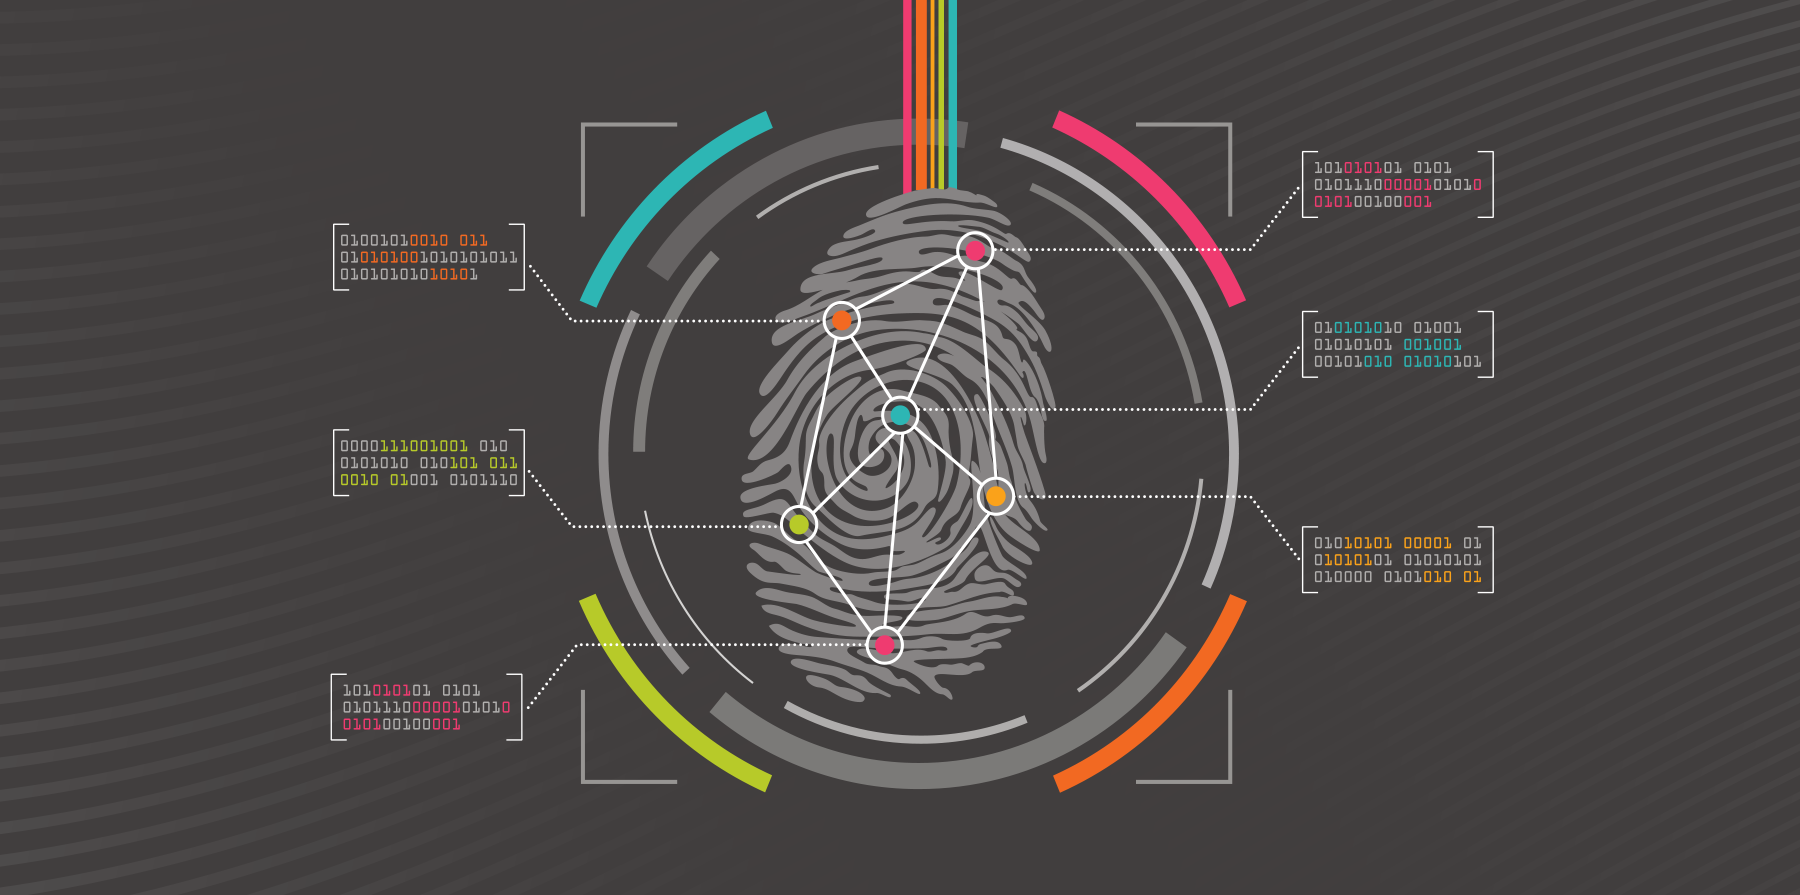 Biometric technology may strengthen school safety. It may also offer a more efficient system for identity checks, attendance taking and bookkeeping.